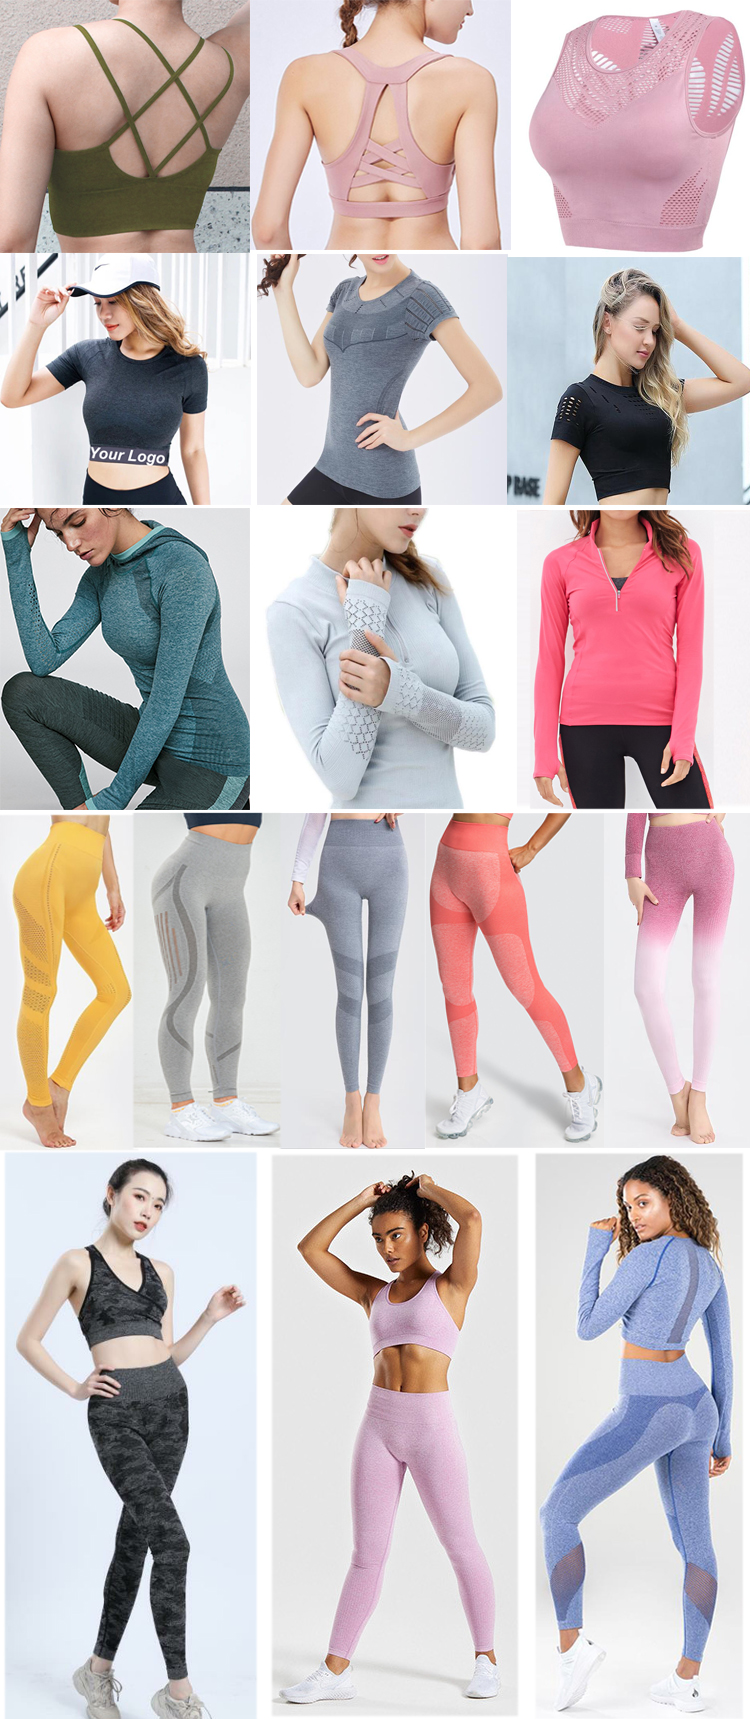 Women Sweatshirts Fitness Female Tee shirt Yoga Sweatshirt Long Sleeves Workout Seamless Hoodie t-shirts  Blouses Sports Clothes